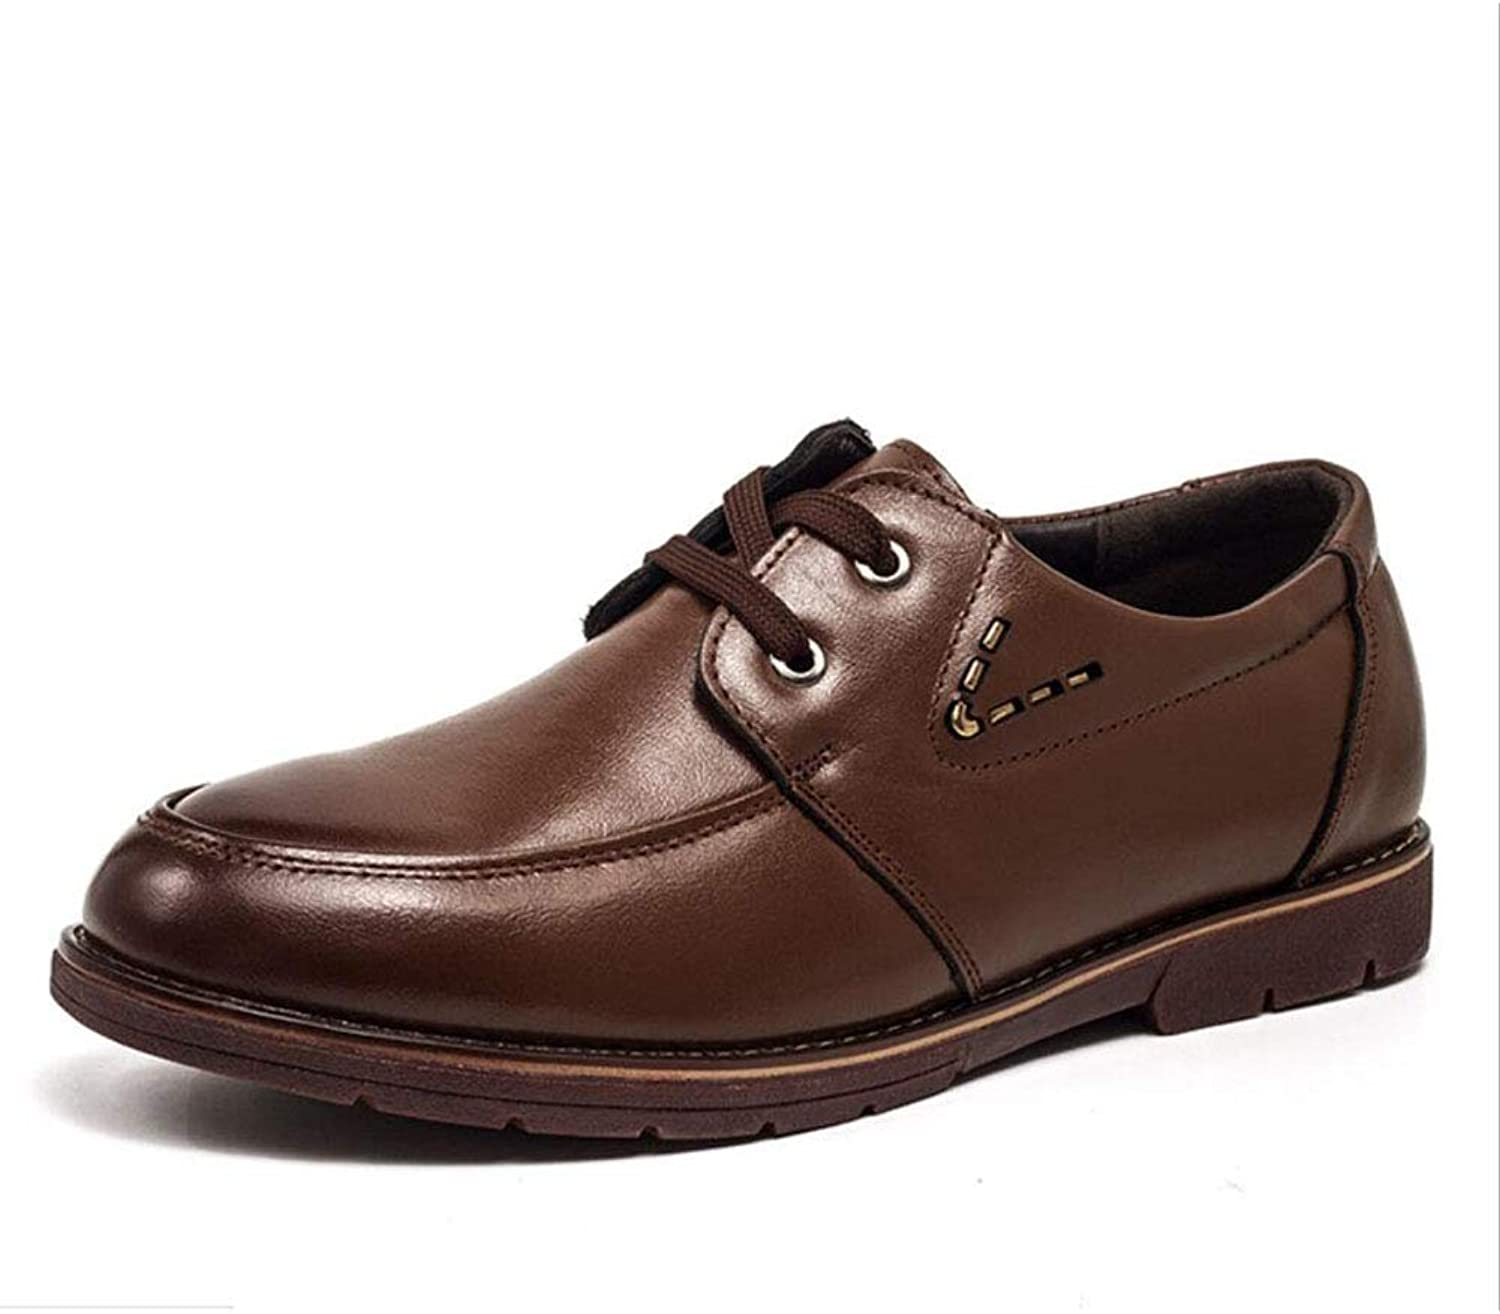 Men's shoes,Leather Spring Fall Lace up Formal Business shoes, Stylish Casual shoes,Office & Career Party & Evening